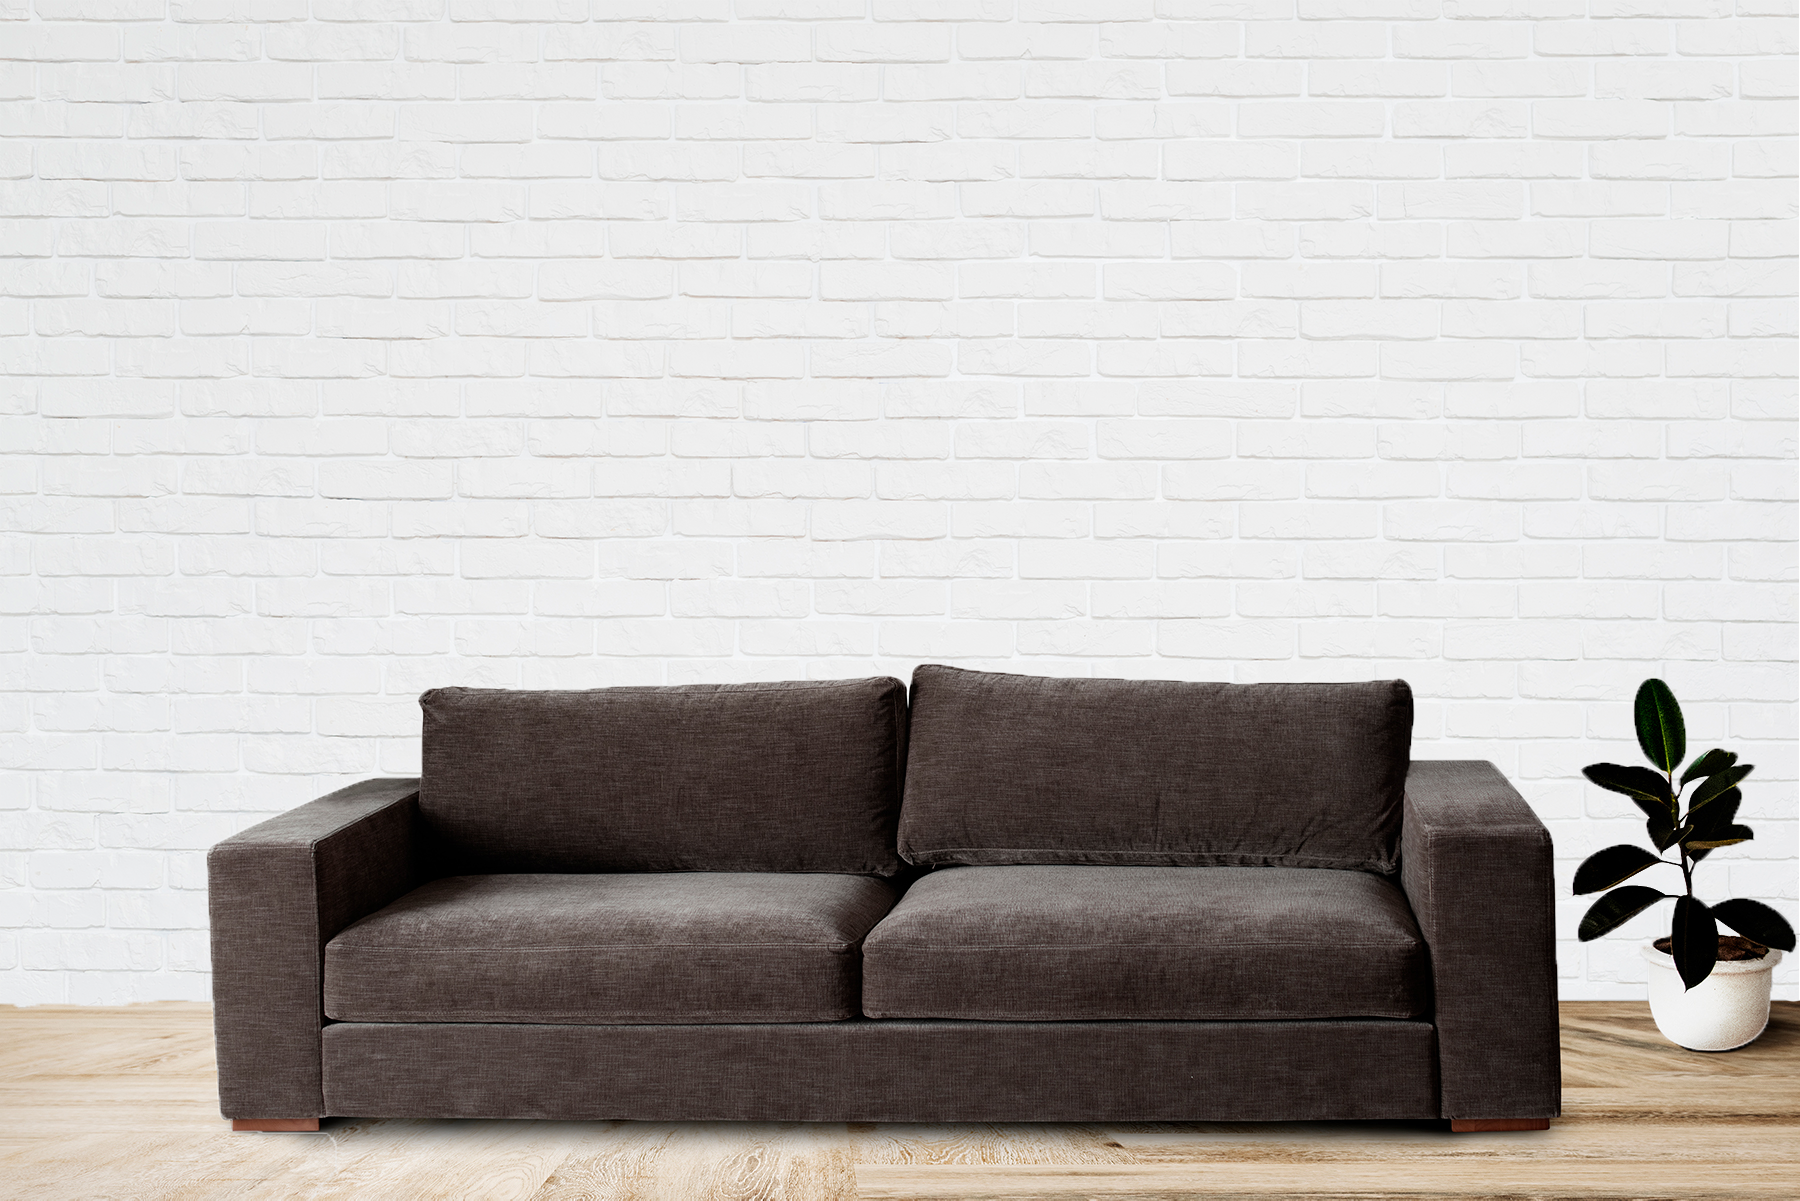 brow sofa white brick wall